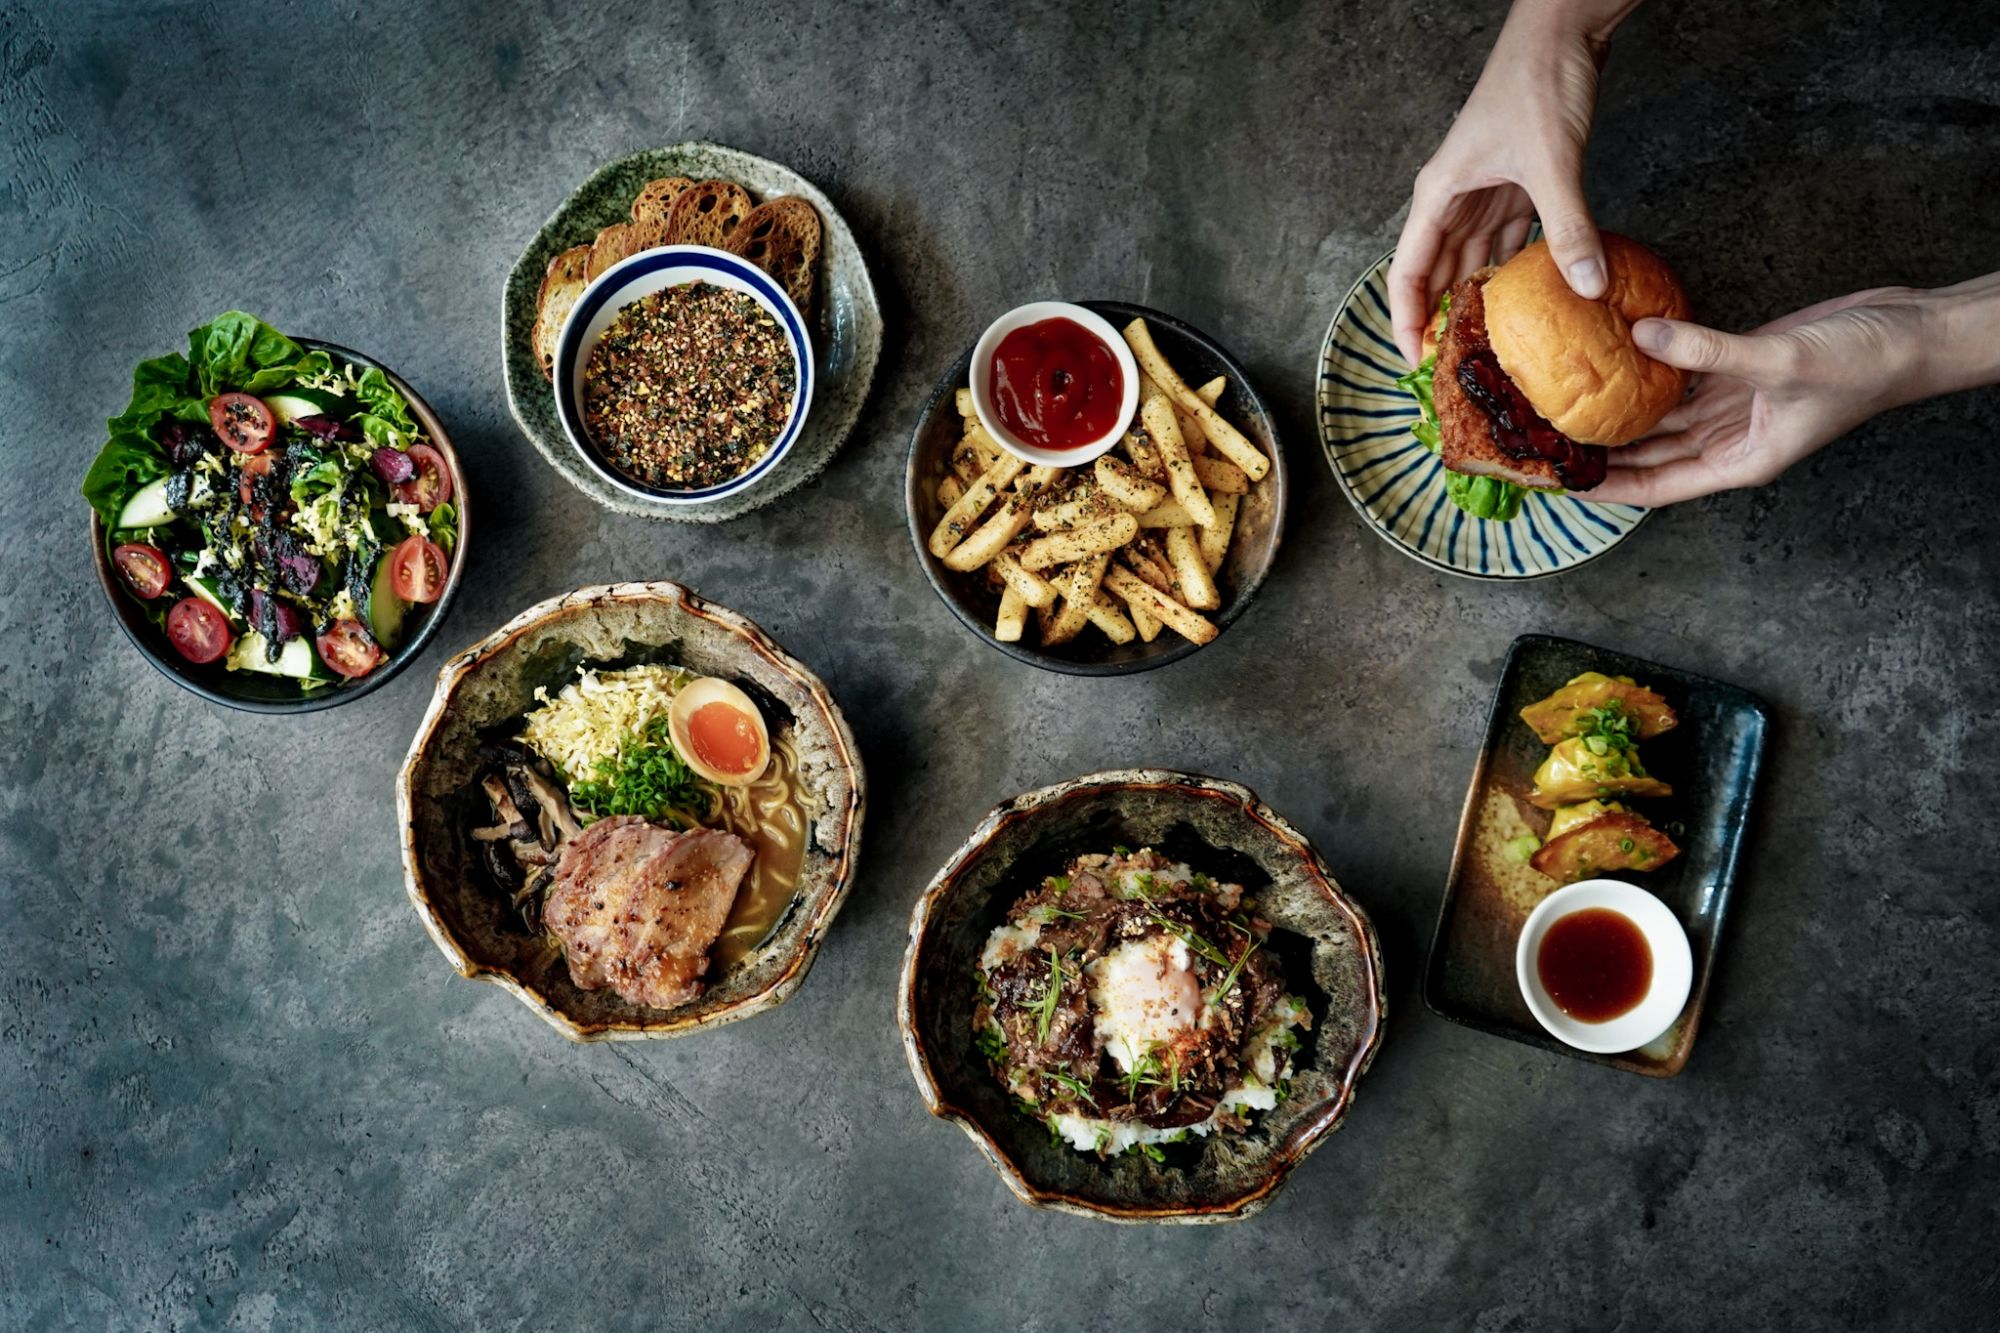 COOP's collection of casual Japanese fare